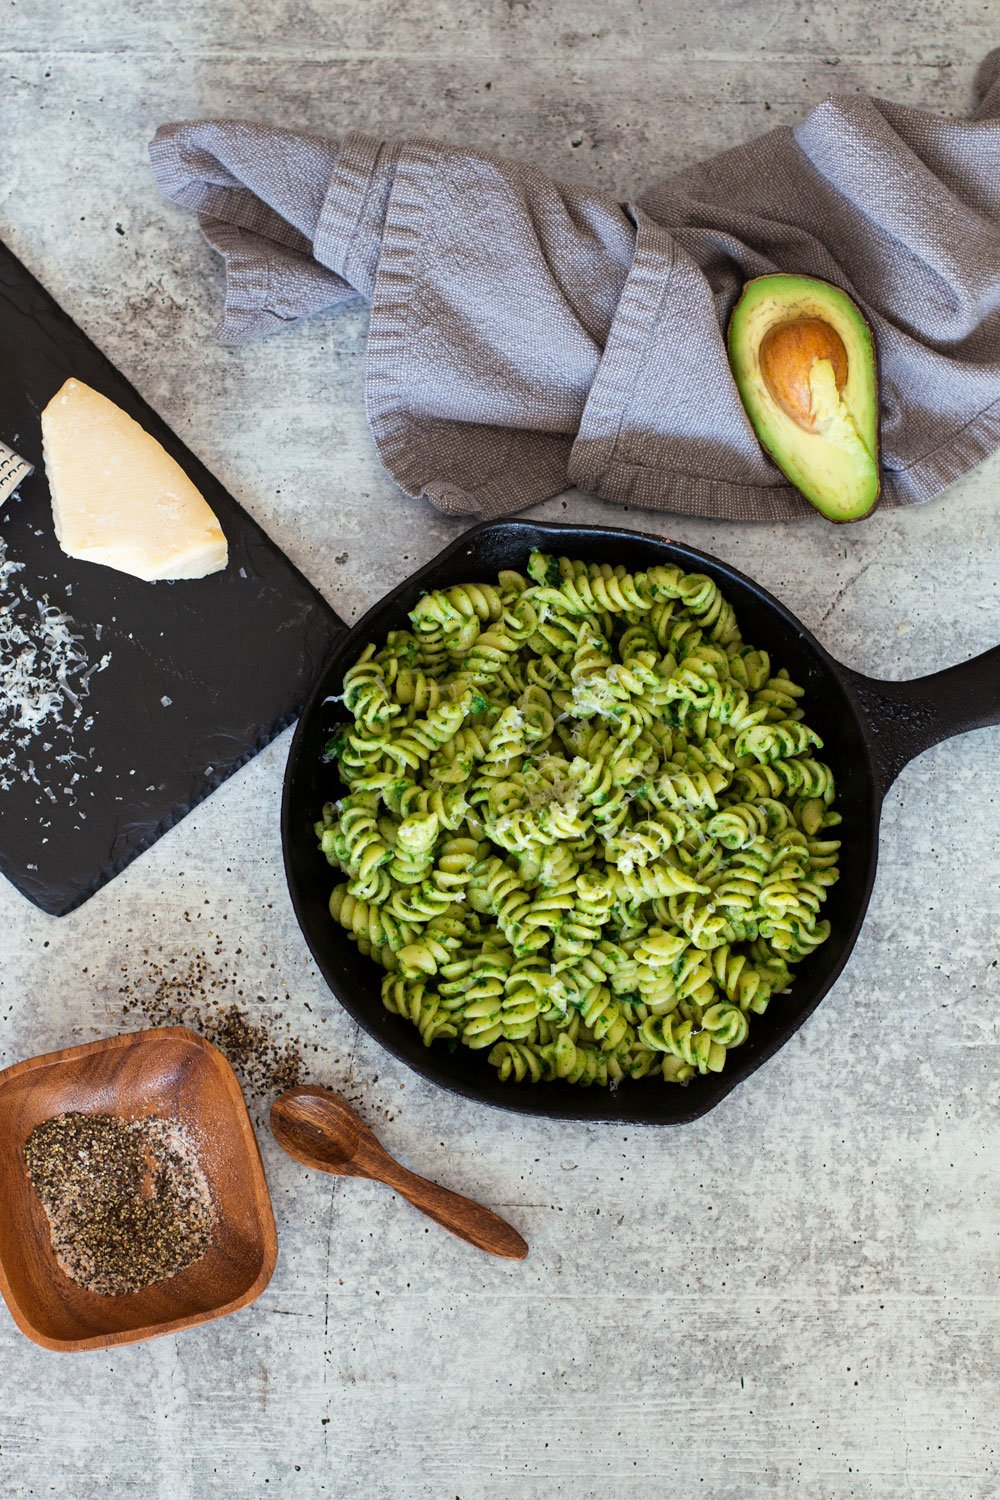 Spinach pasta on a table with Parmesan cheese, avocado on table.